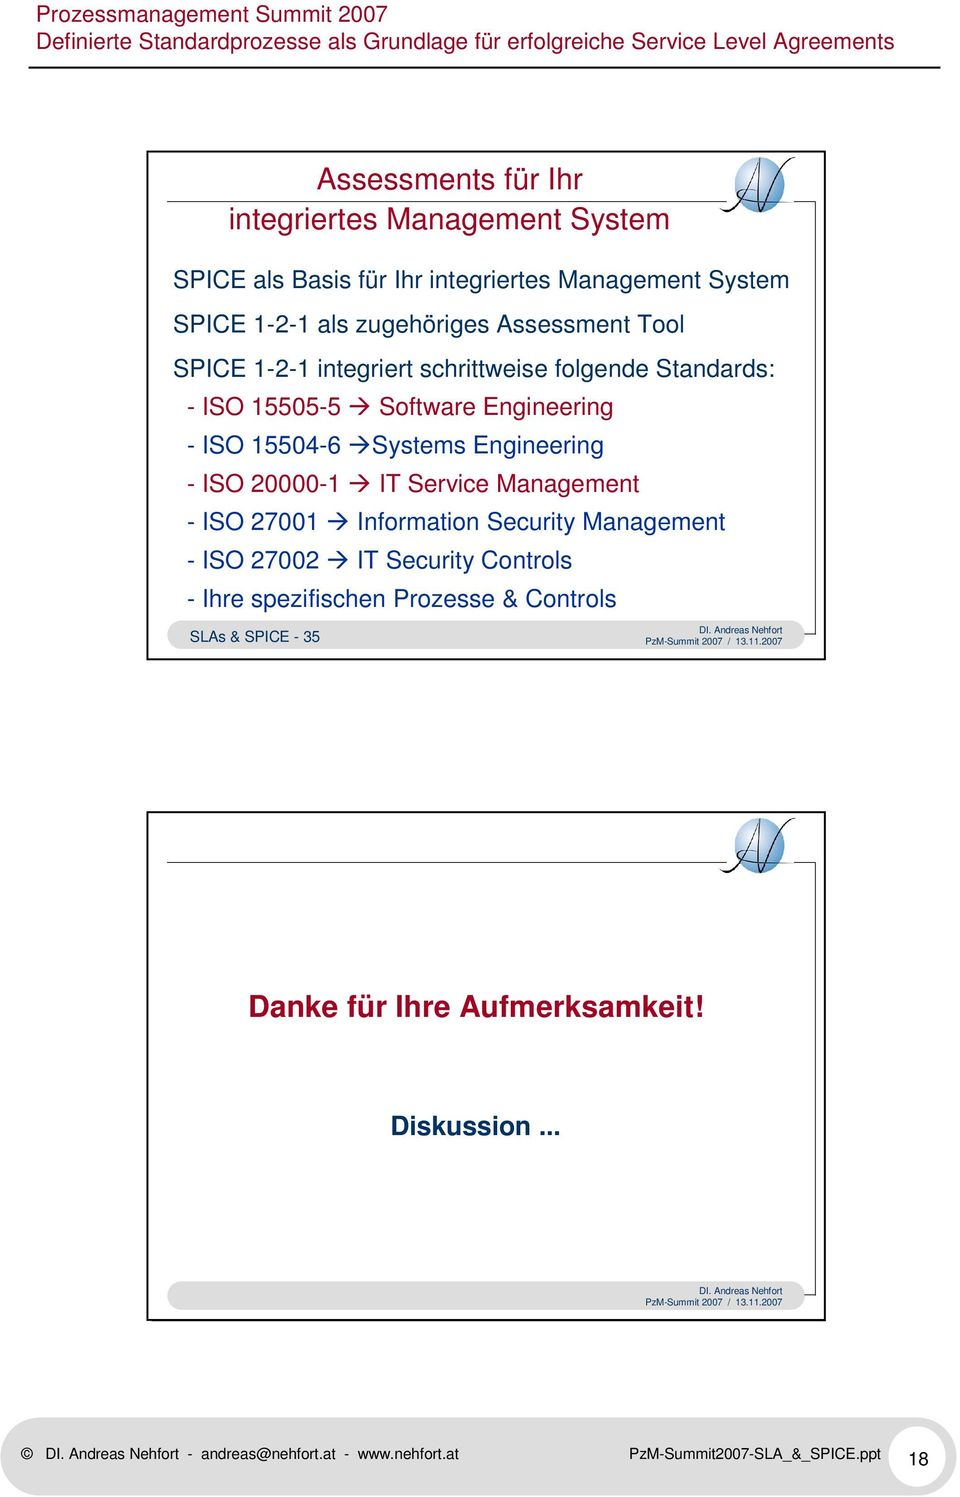 - ISO 20000-1 IT Service Management - ISO 27001 Information Security Management - ISO 27002 IT Security Controls - Ihre spezifischen